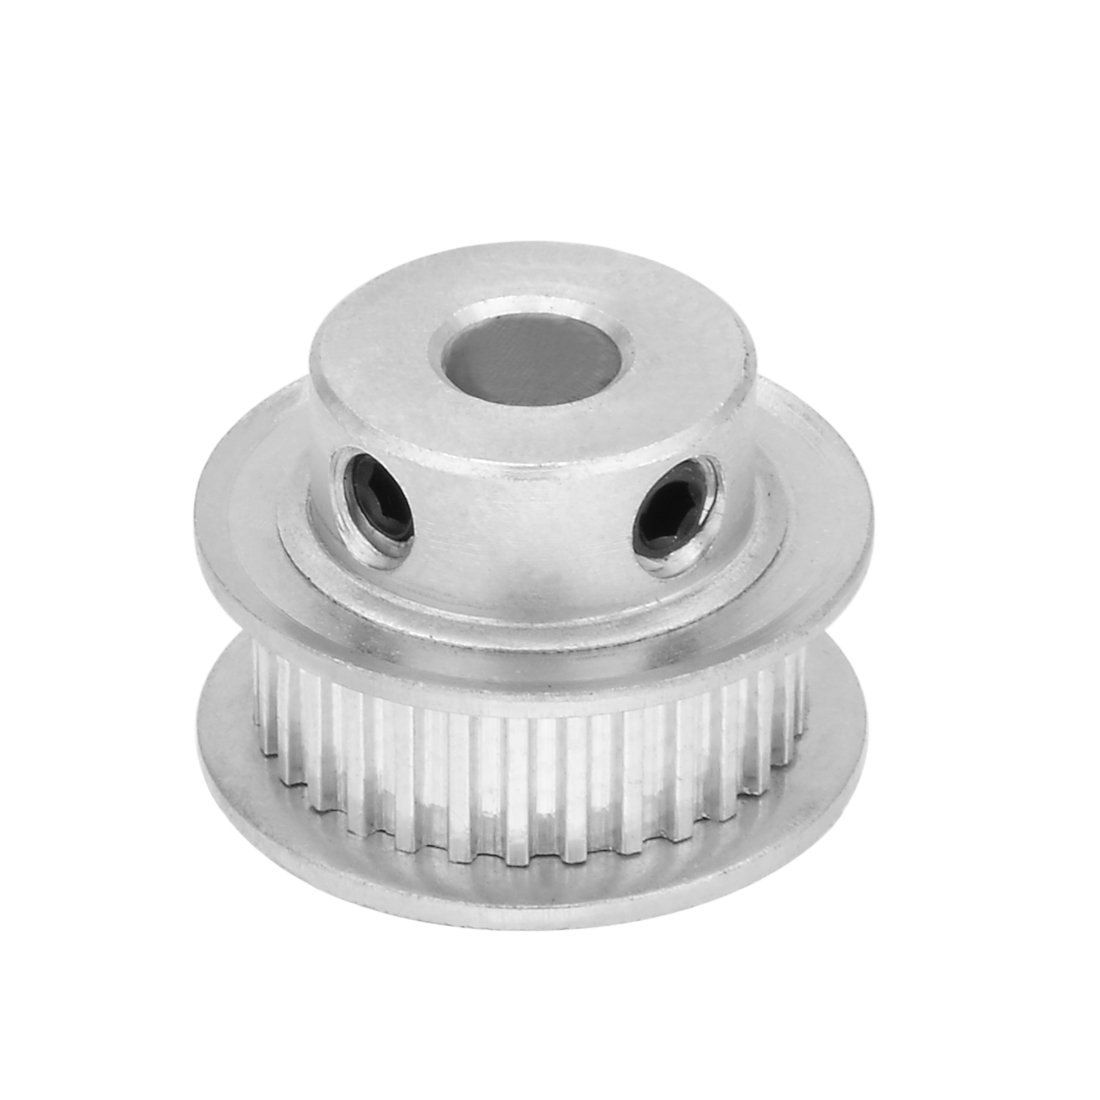 uxcell Aluminum MXL 30 Teeth 6mm Bore Timing Belt Pulley Synchronous Wheel for 6mm Belt 3D Printer CNC